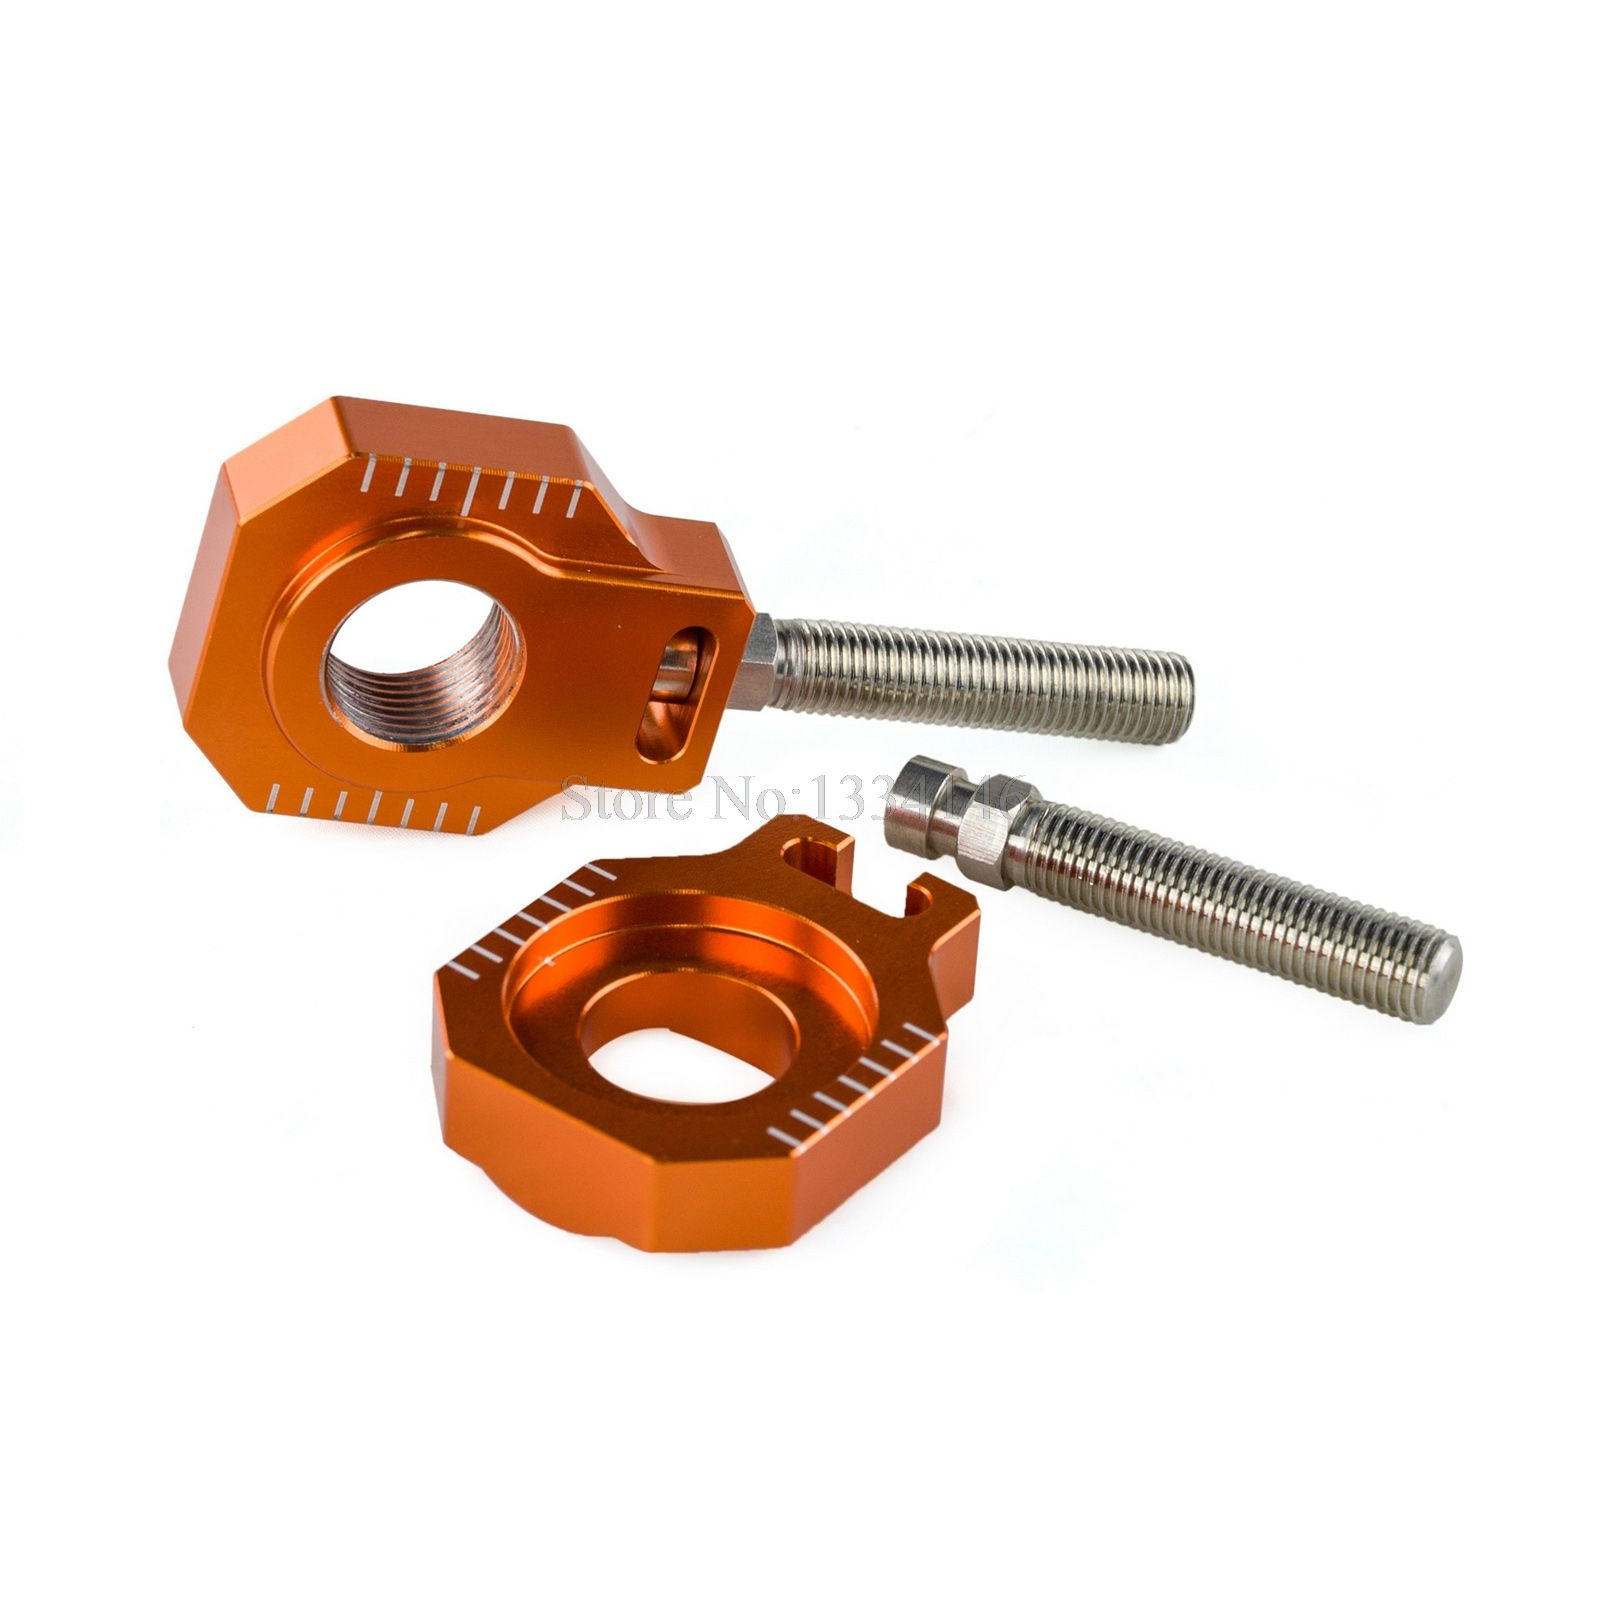 NICECNC Rear Axle Blocks Chain Adjuster For KTM 125 250 300 350 450 525 530 EXC EXCF XCW XCFW 2017 SX SXF XC XCF SX-F EXC-F XC-F